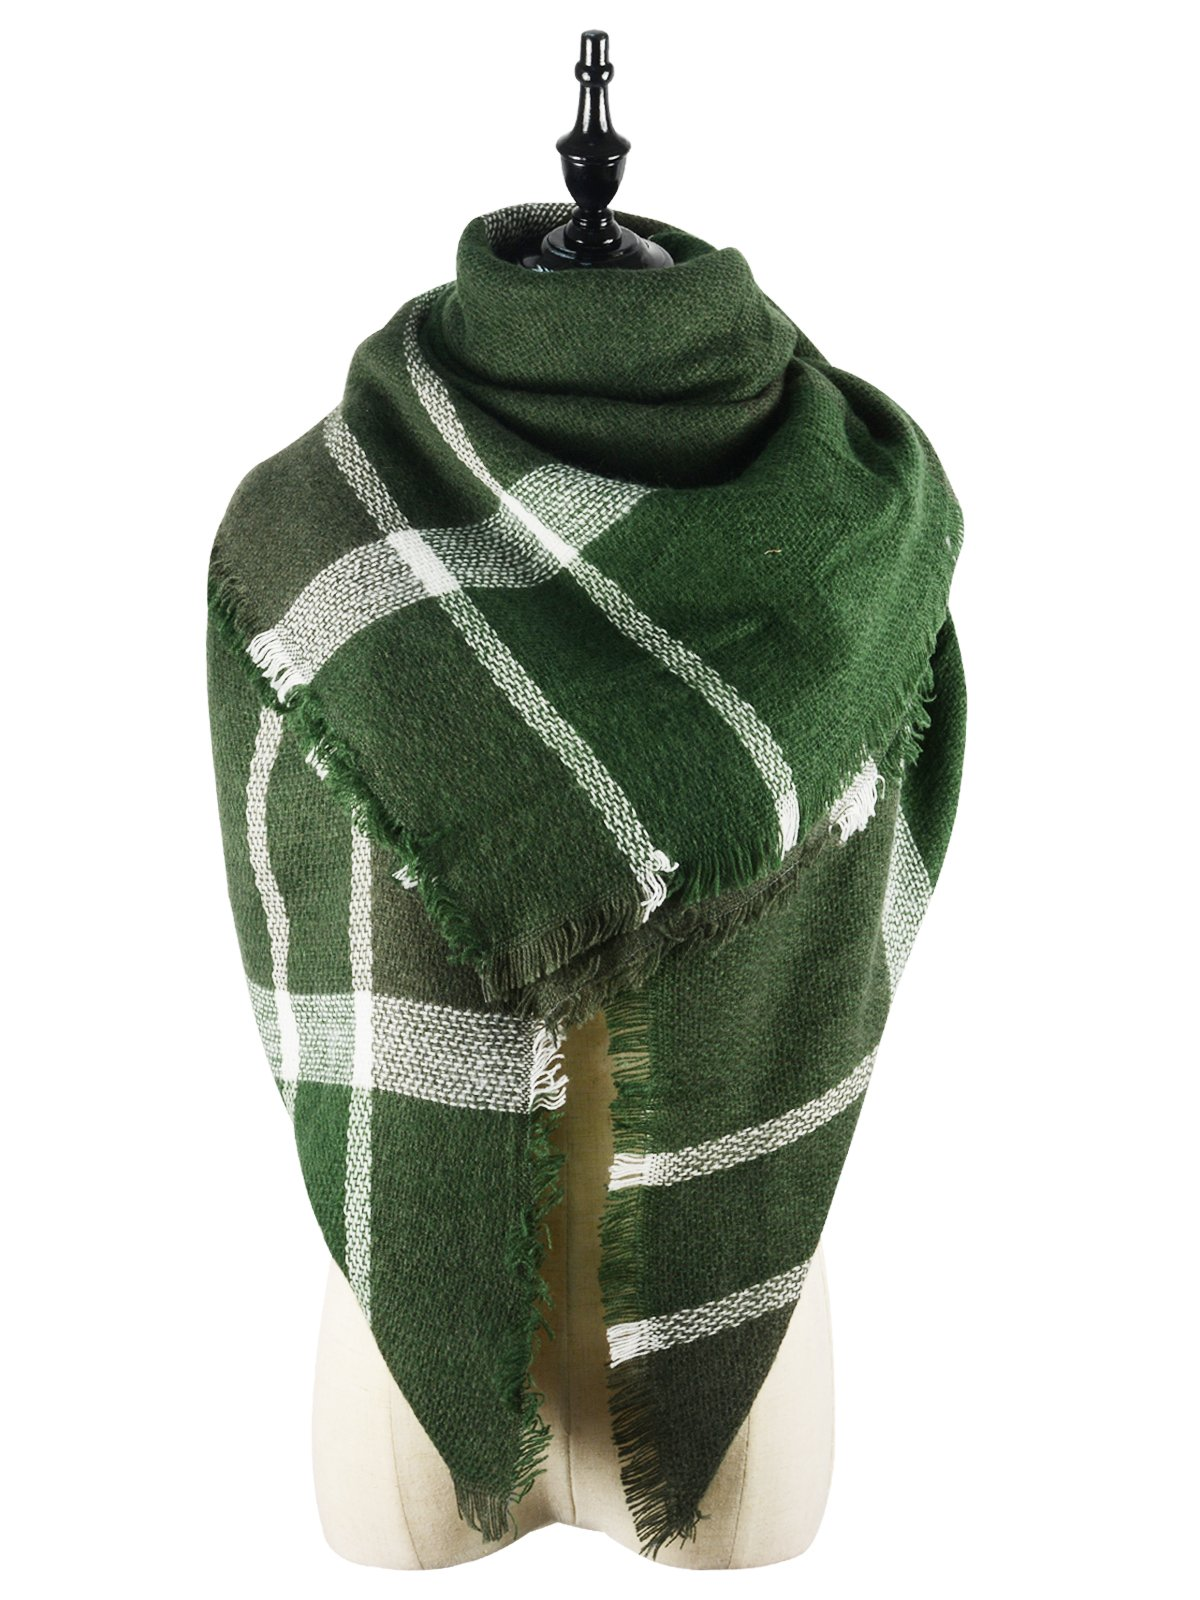 Womens Cozy Warm Plaid Blanket Scarf Winter Fall Large Square Soft Tartan Scarves Shawl Wrap Green Scarf